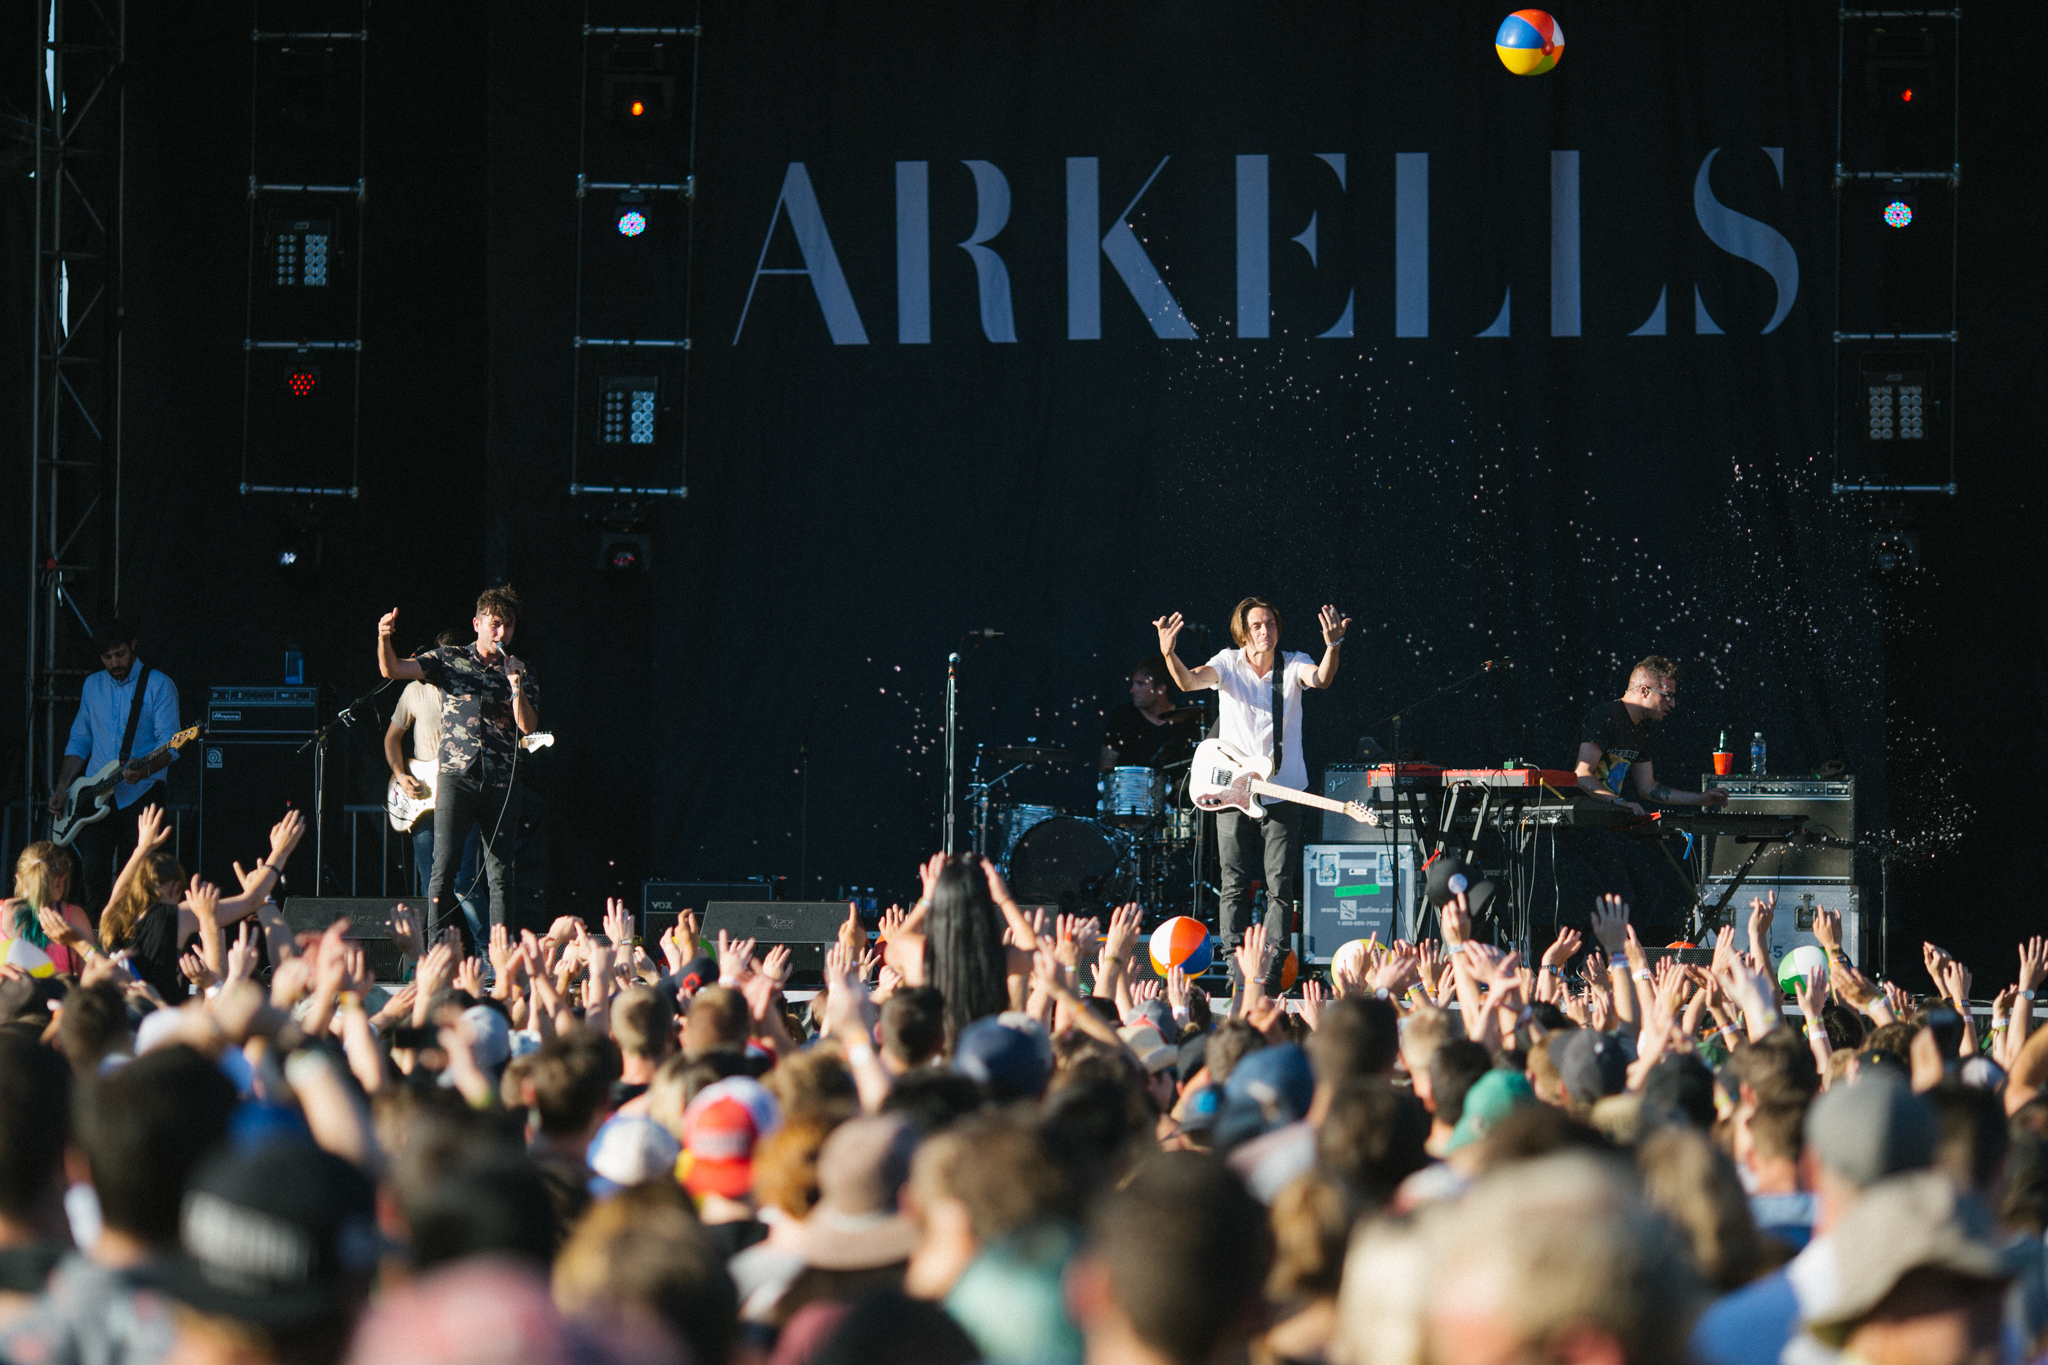 Arkells - Photo by Lindsey Blane